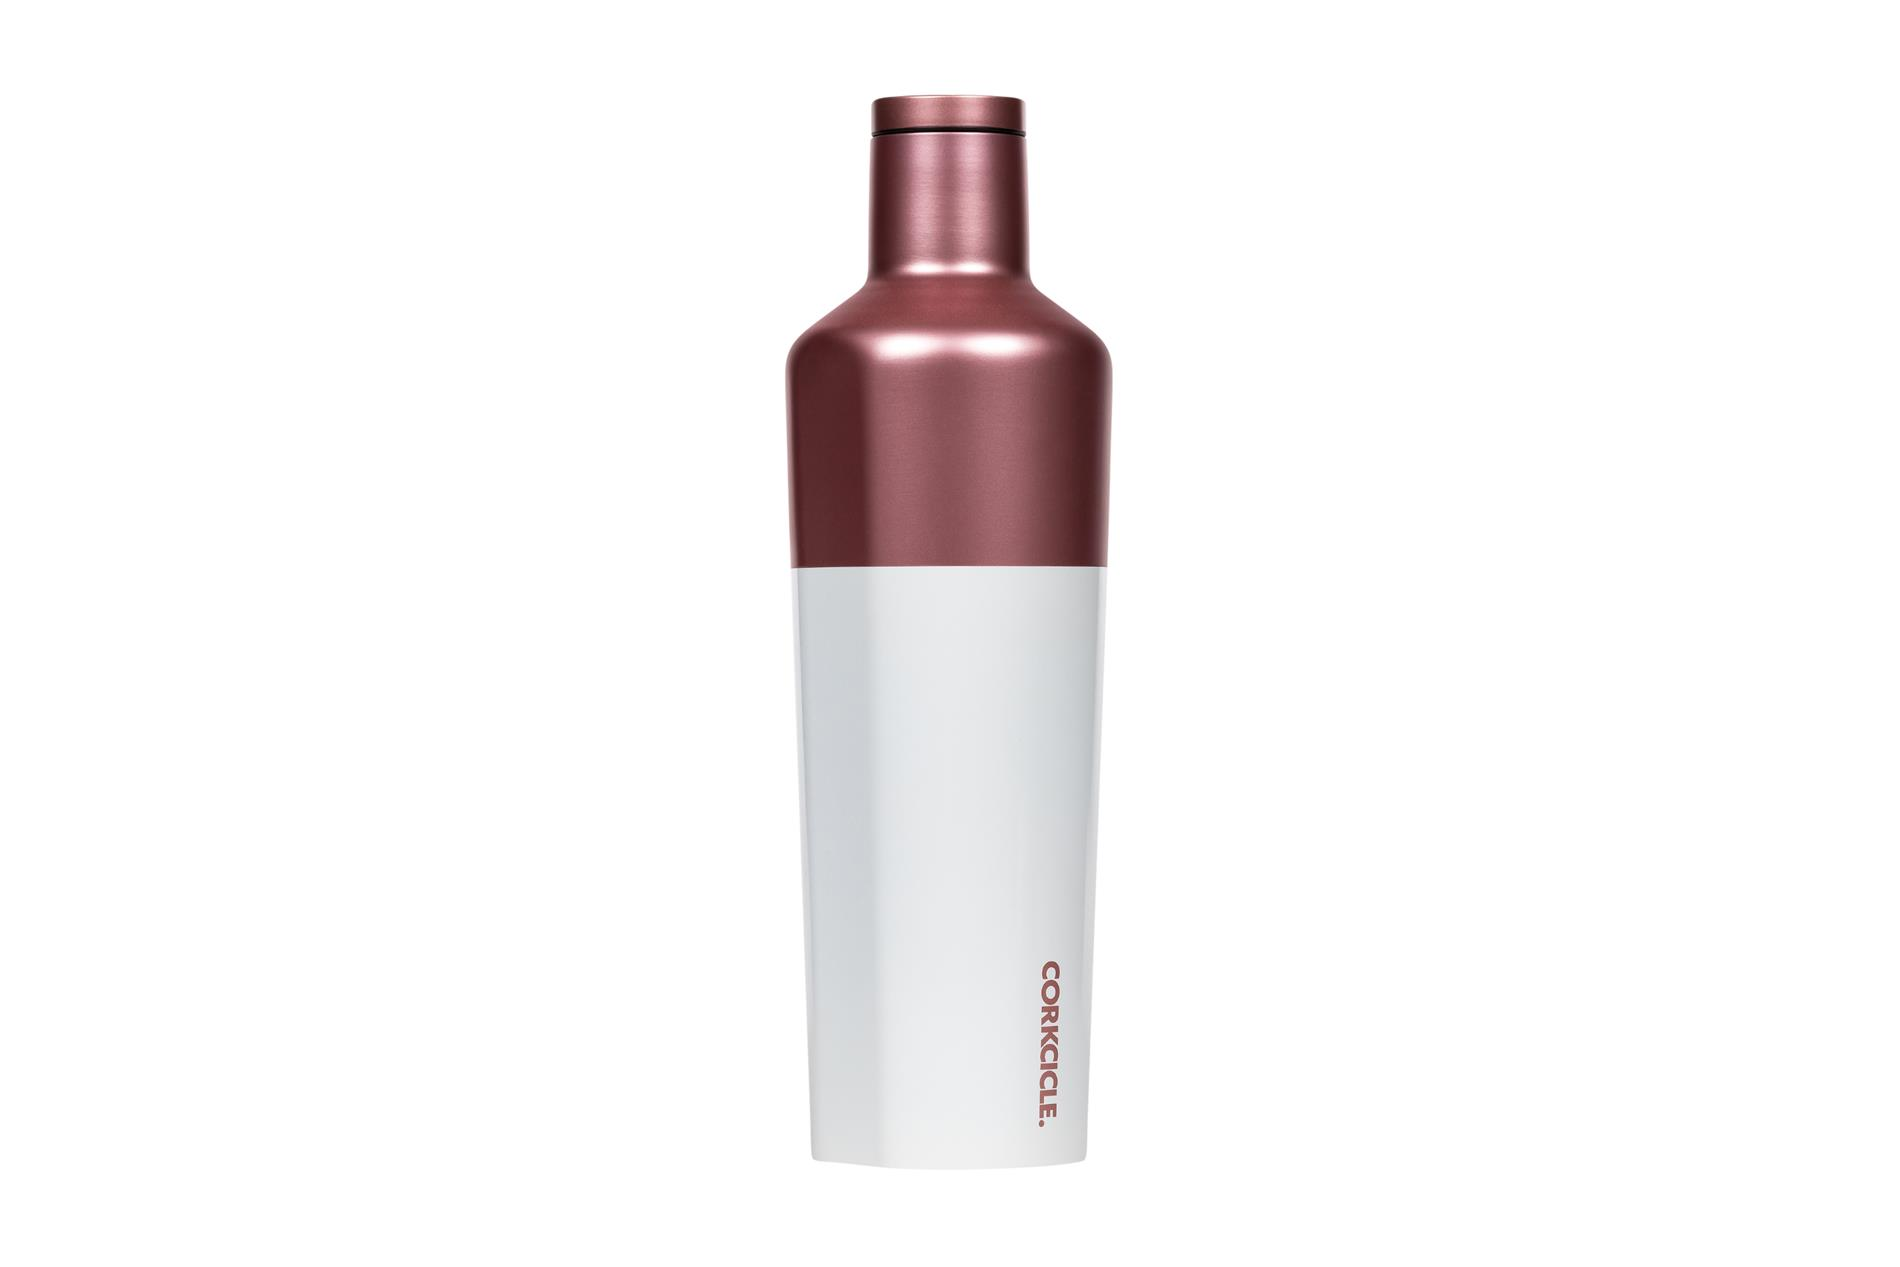 Corkcicle Trinkflasche / Thermo Isolierflasche Rosé 475 ml Color Block